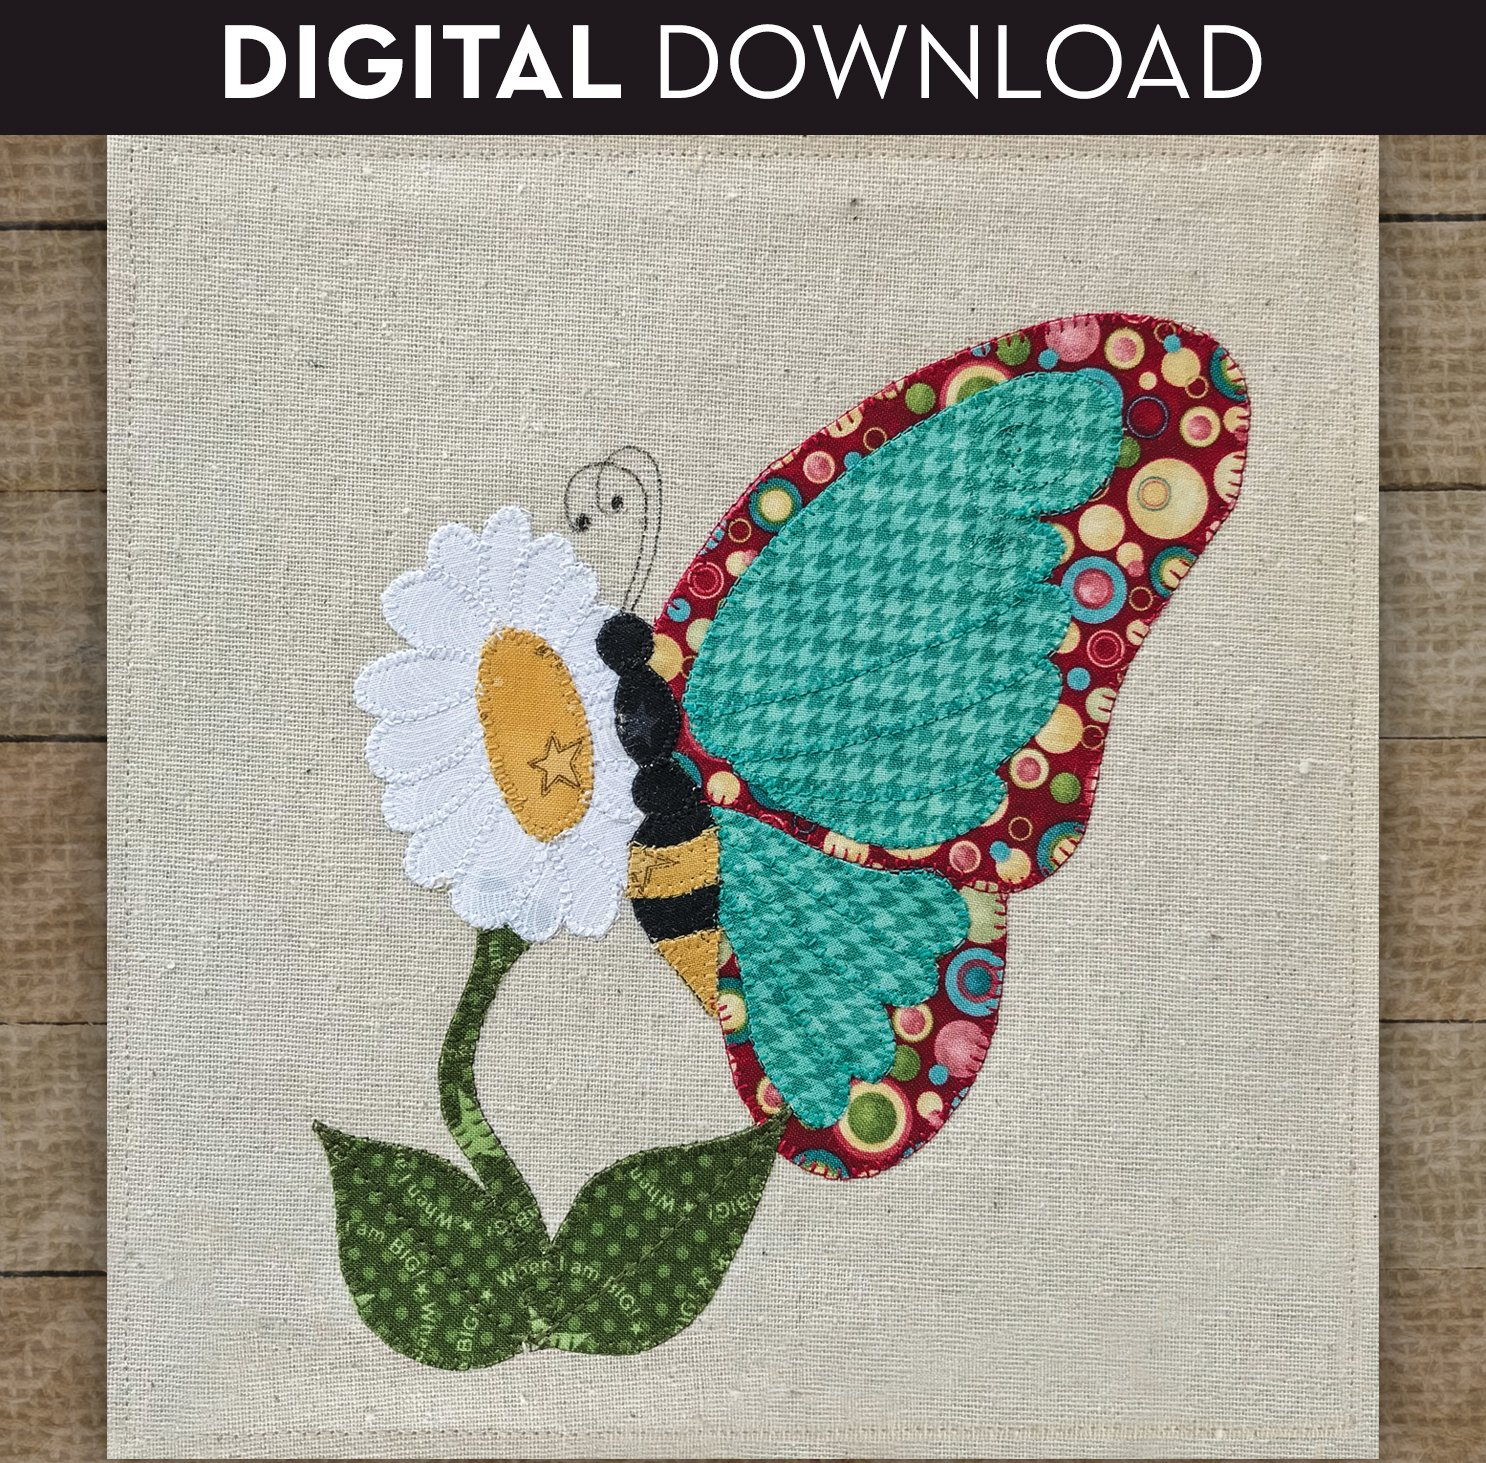 Butterfly - Download